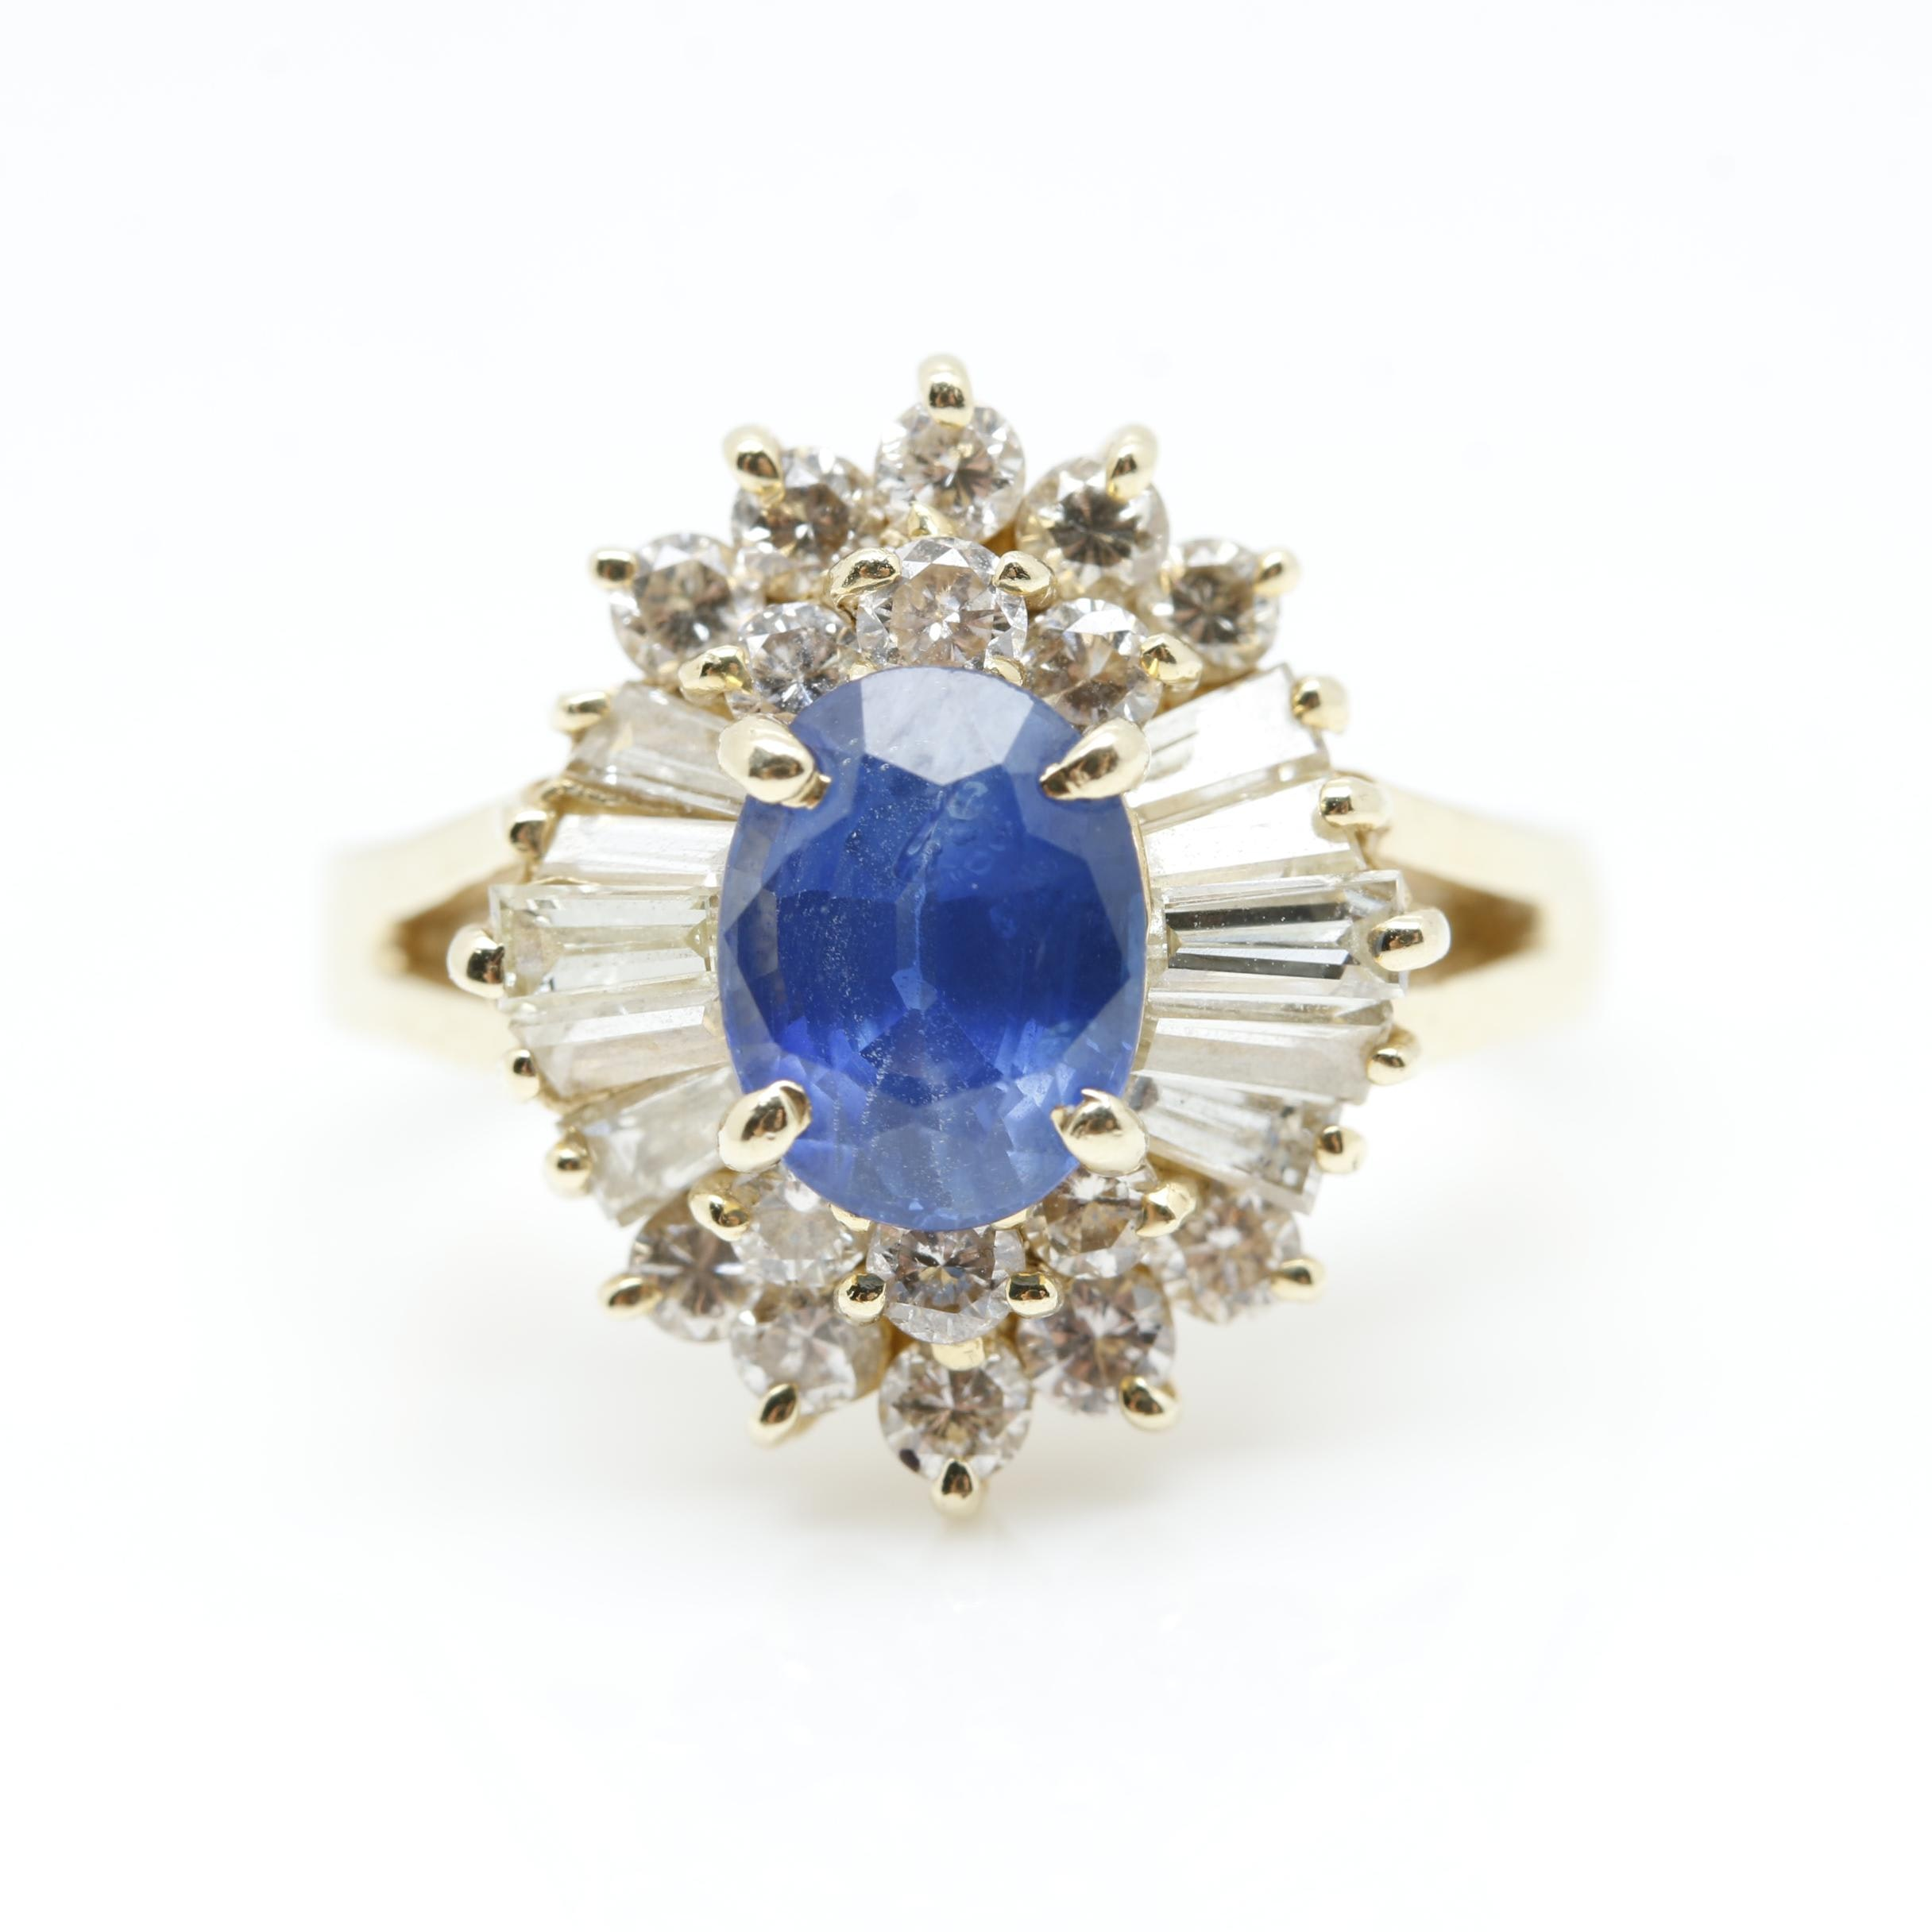 14K Yellow Gold 1.51 CT Sapphire and 1.30 CTW Diamond Ring